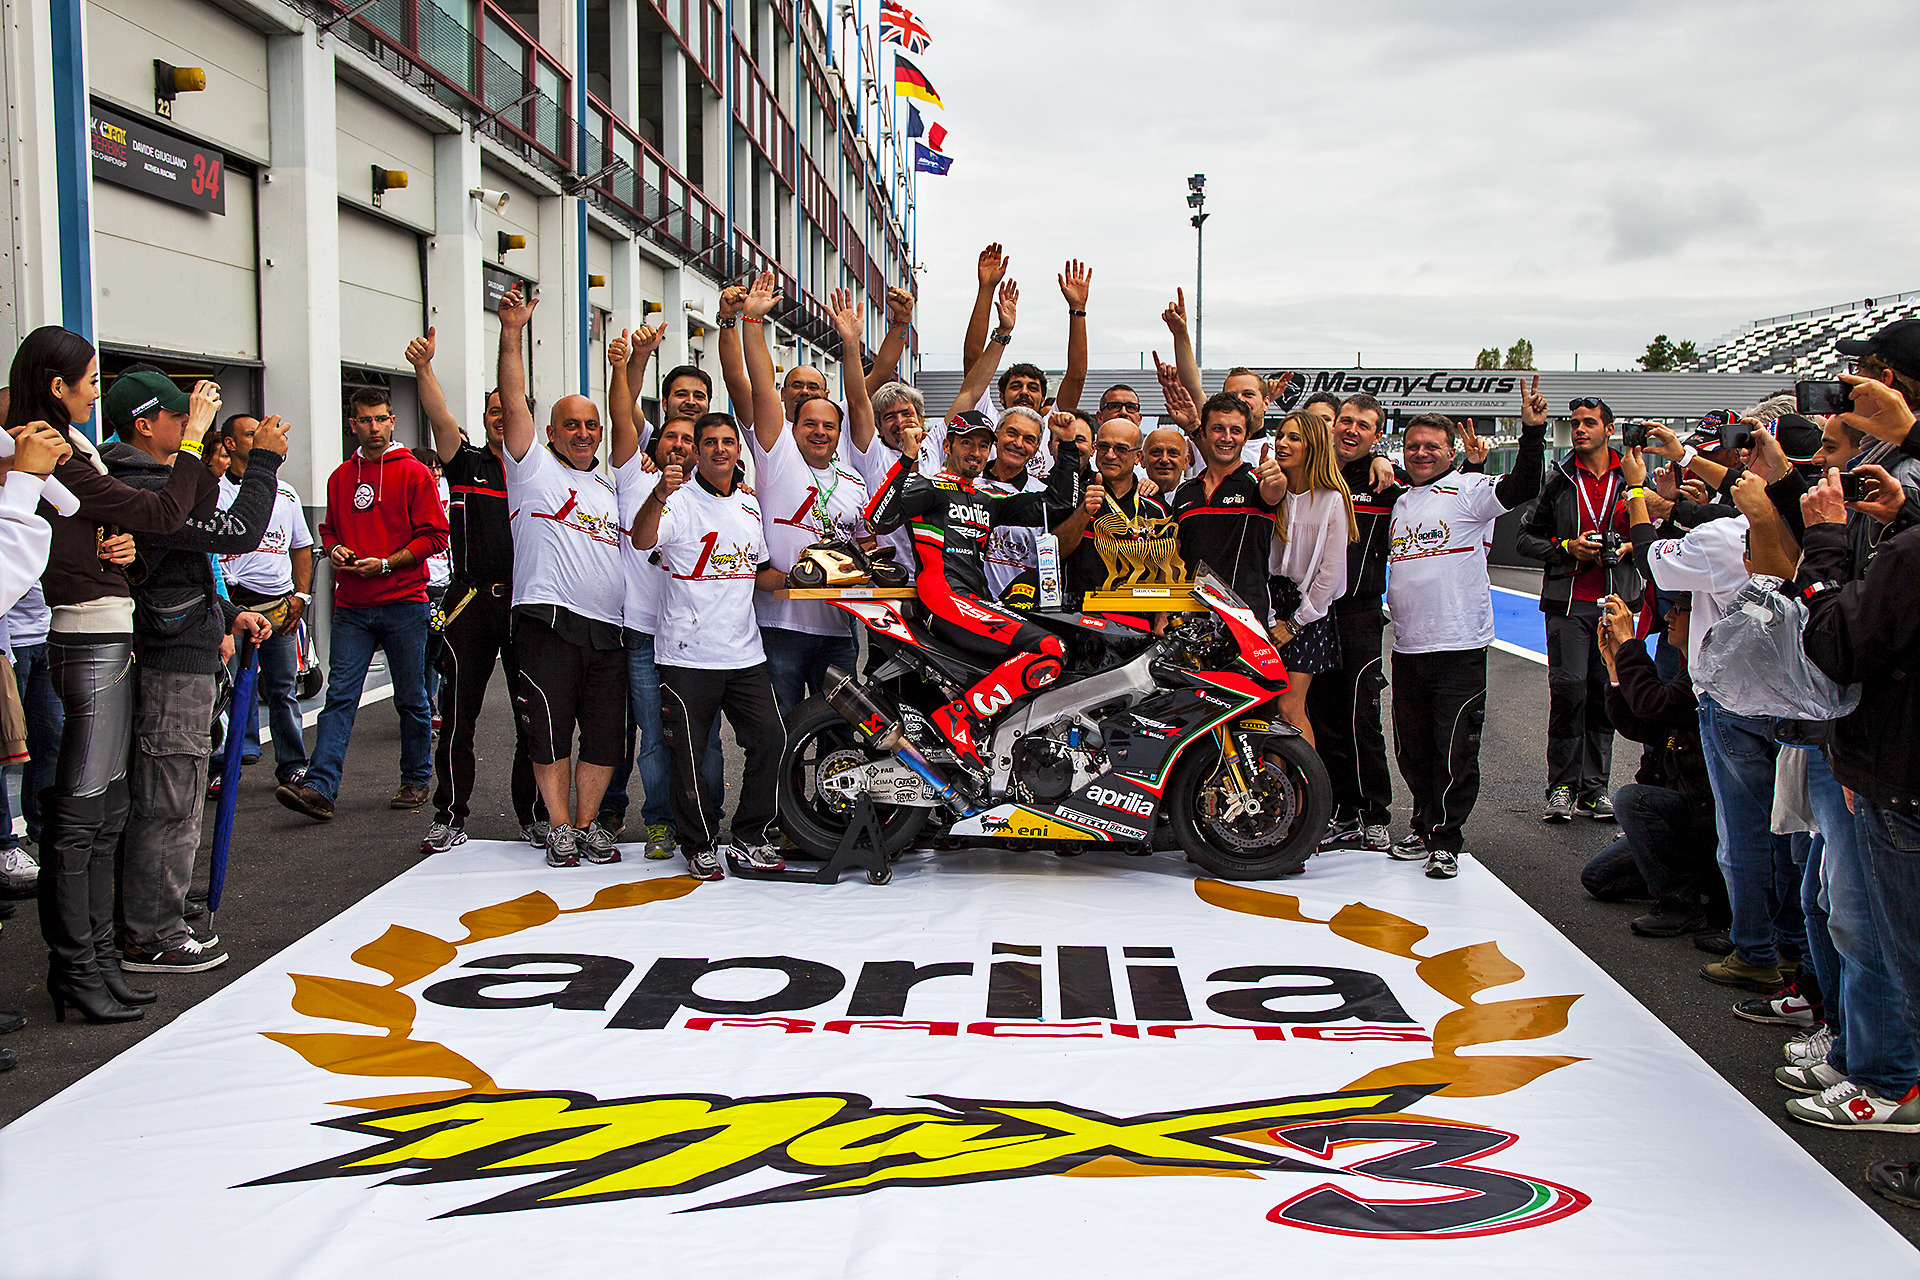 Image Max Biaggi. Aprilia Racing Sbk World Championship 2012 Photo By Foto ReD Photographic Agency